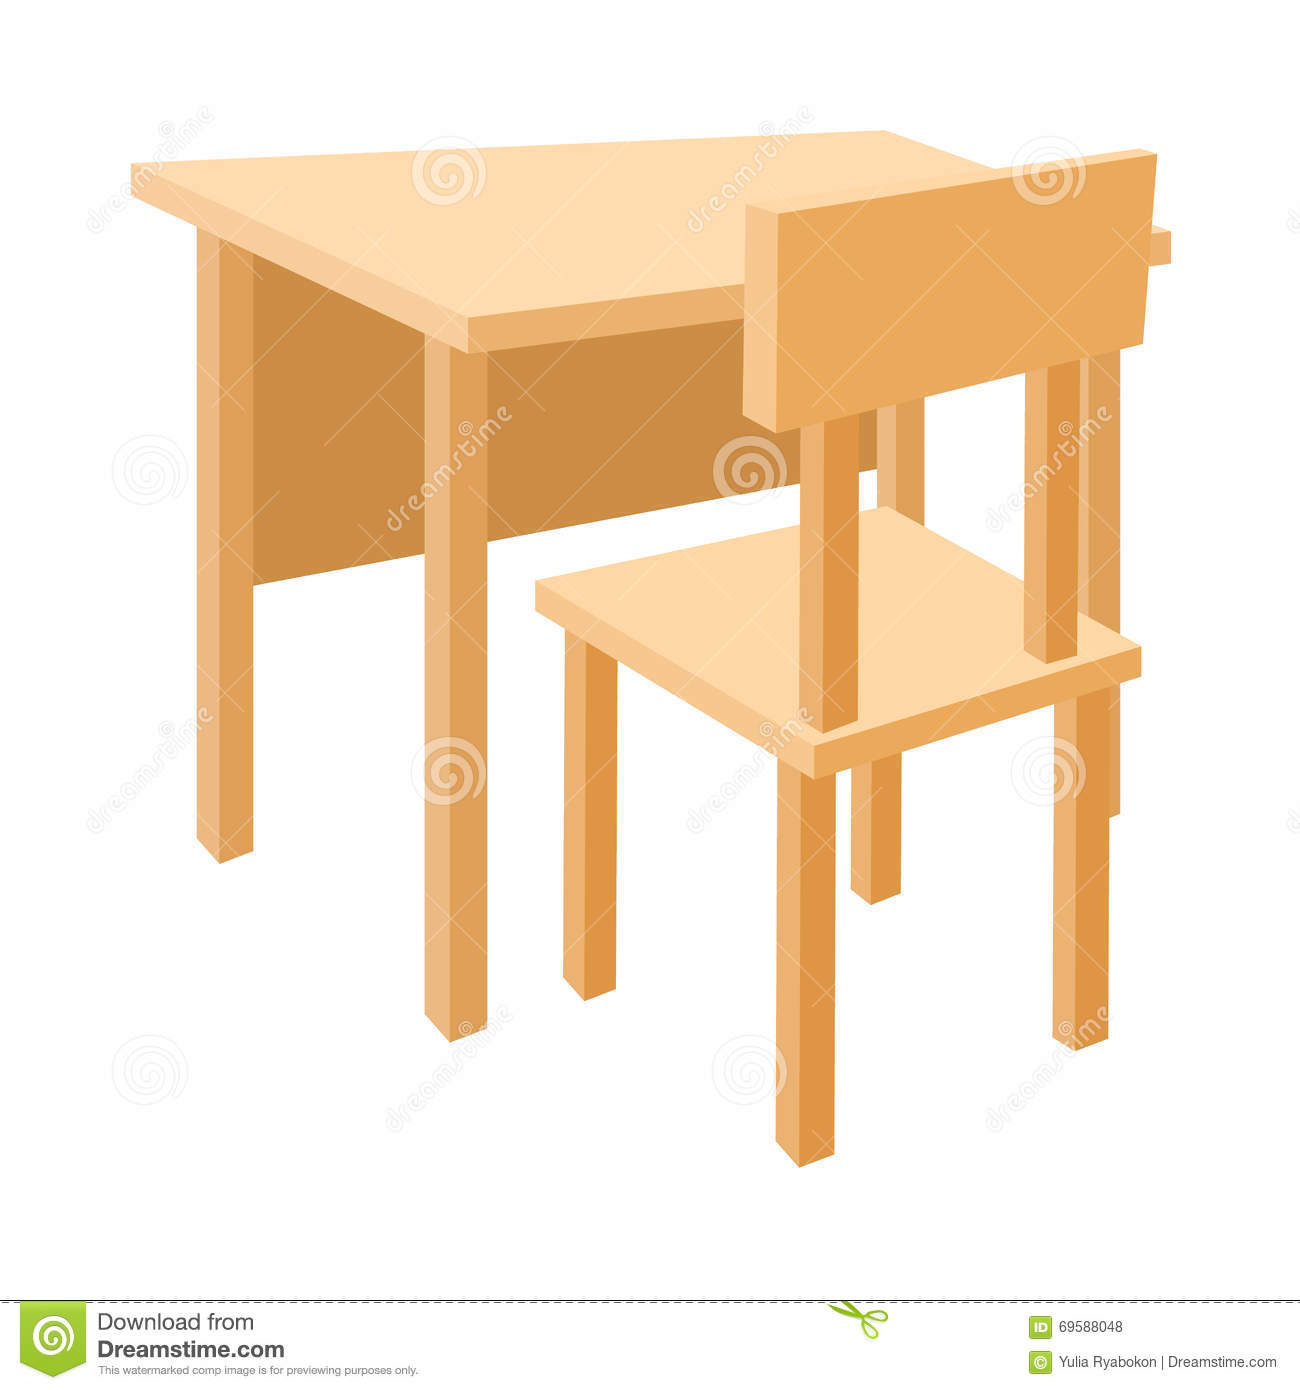 Royalty Free Vector. Download Wooden School Desk And Chair ...